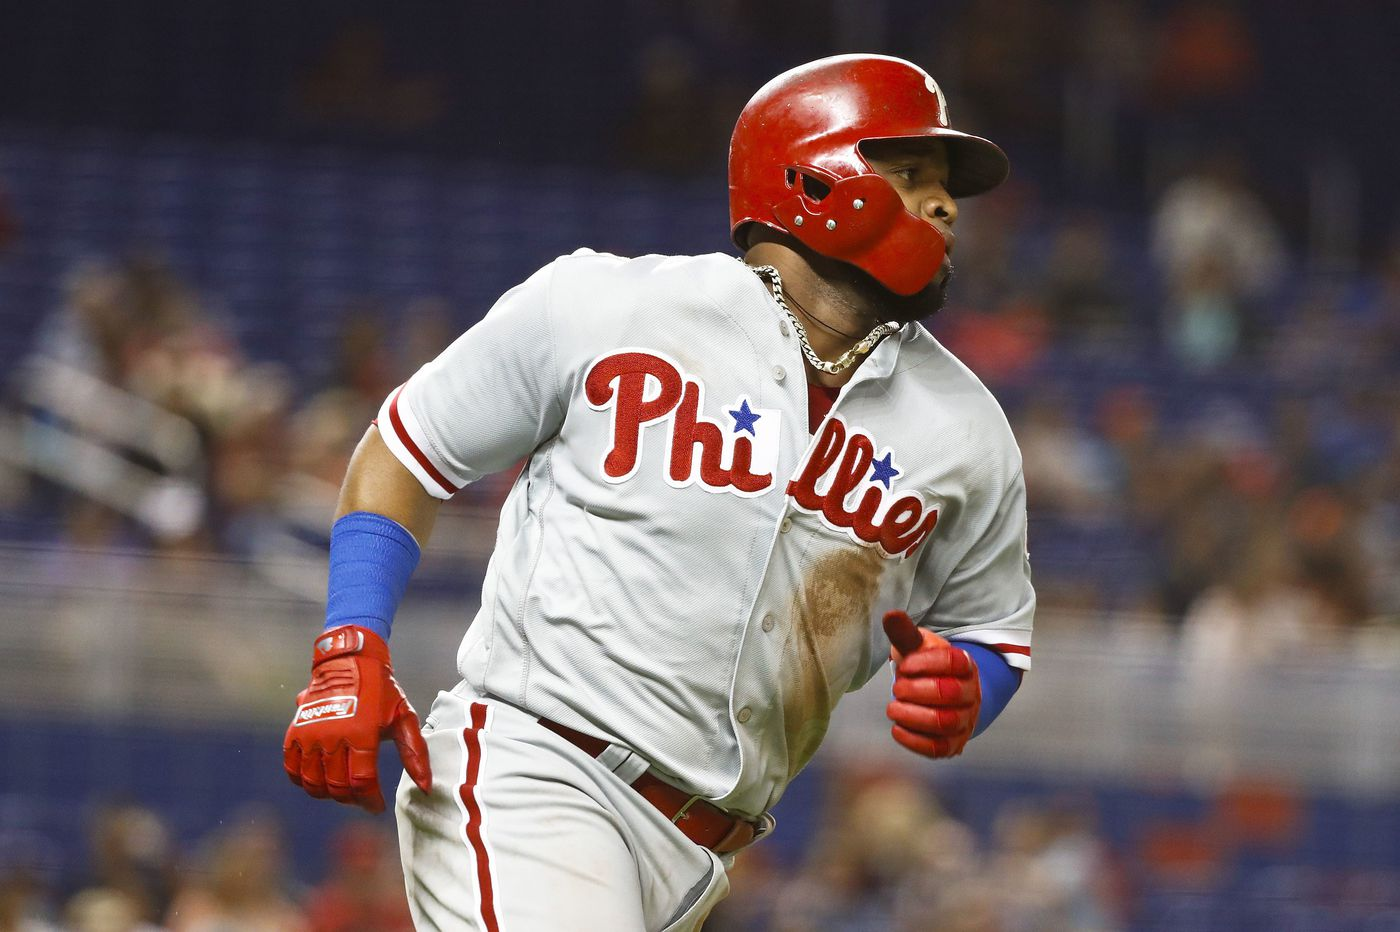 Slumping Phillies stinking like Fish right now | Extra Innings